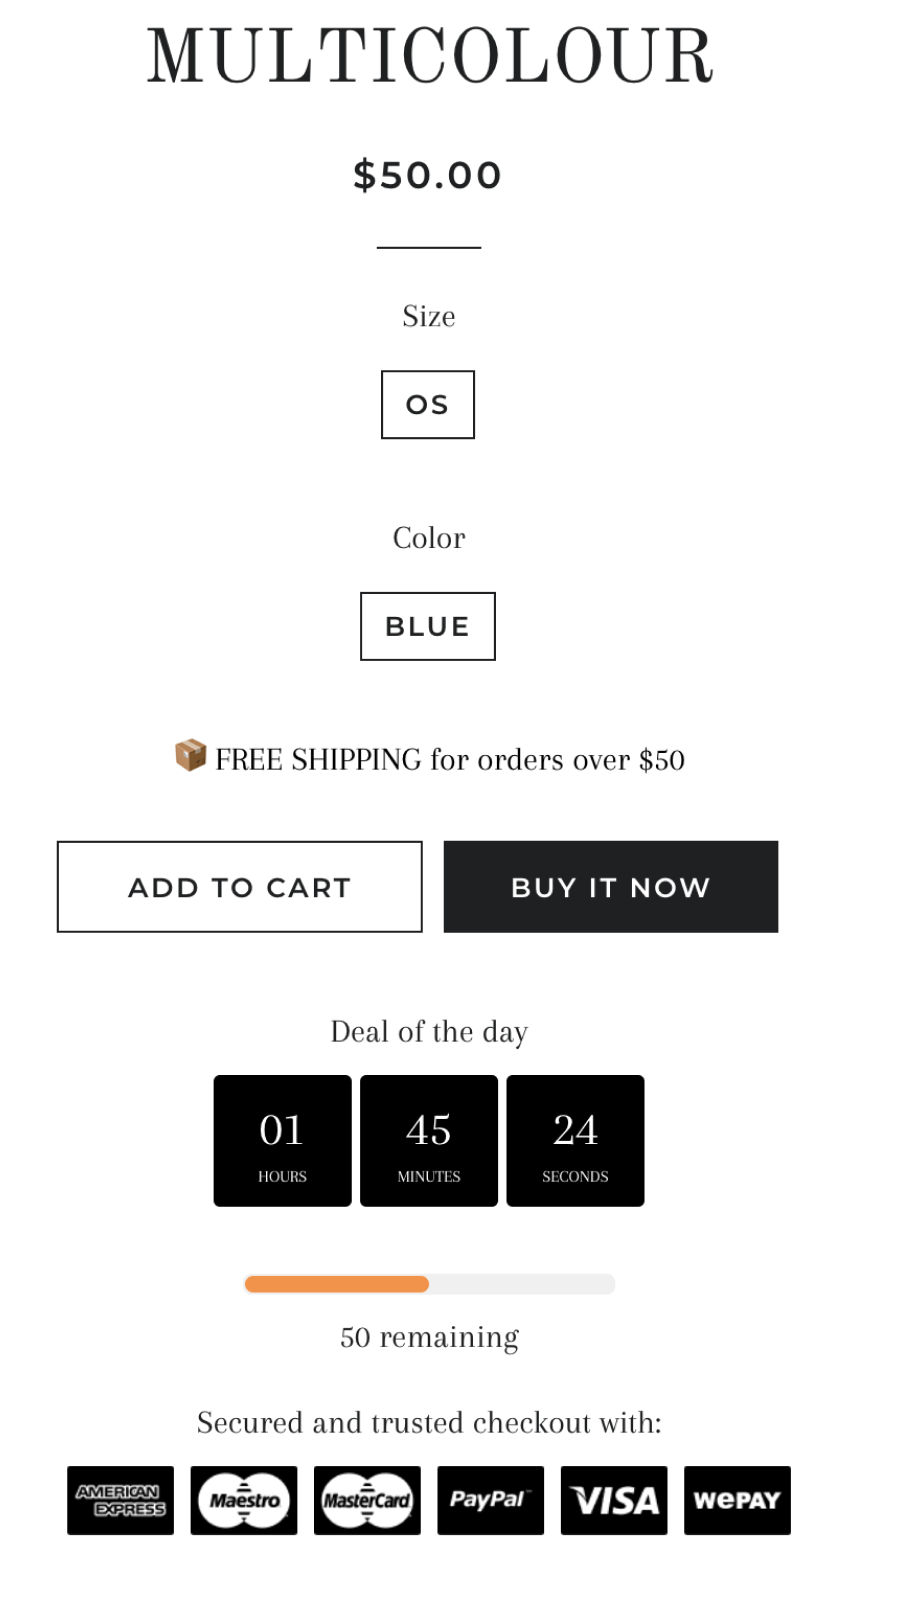 Product page promotions on the storefront